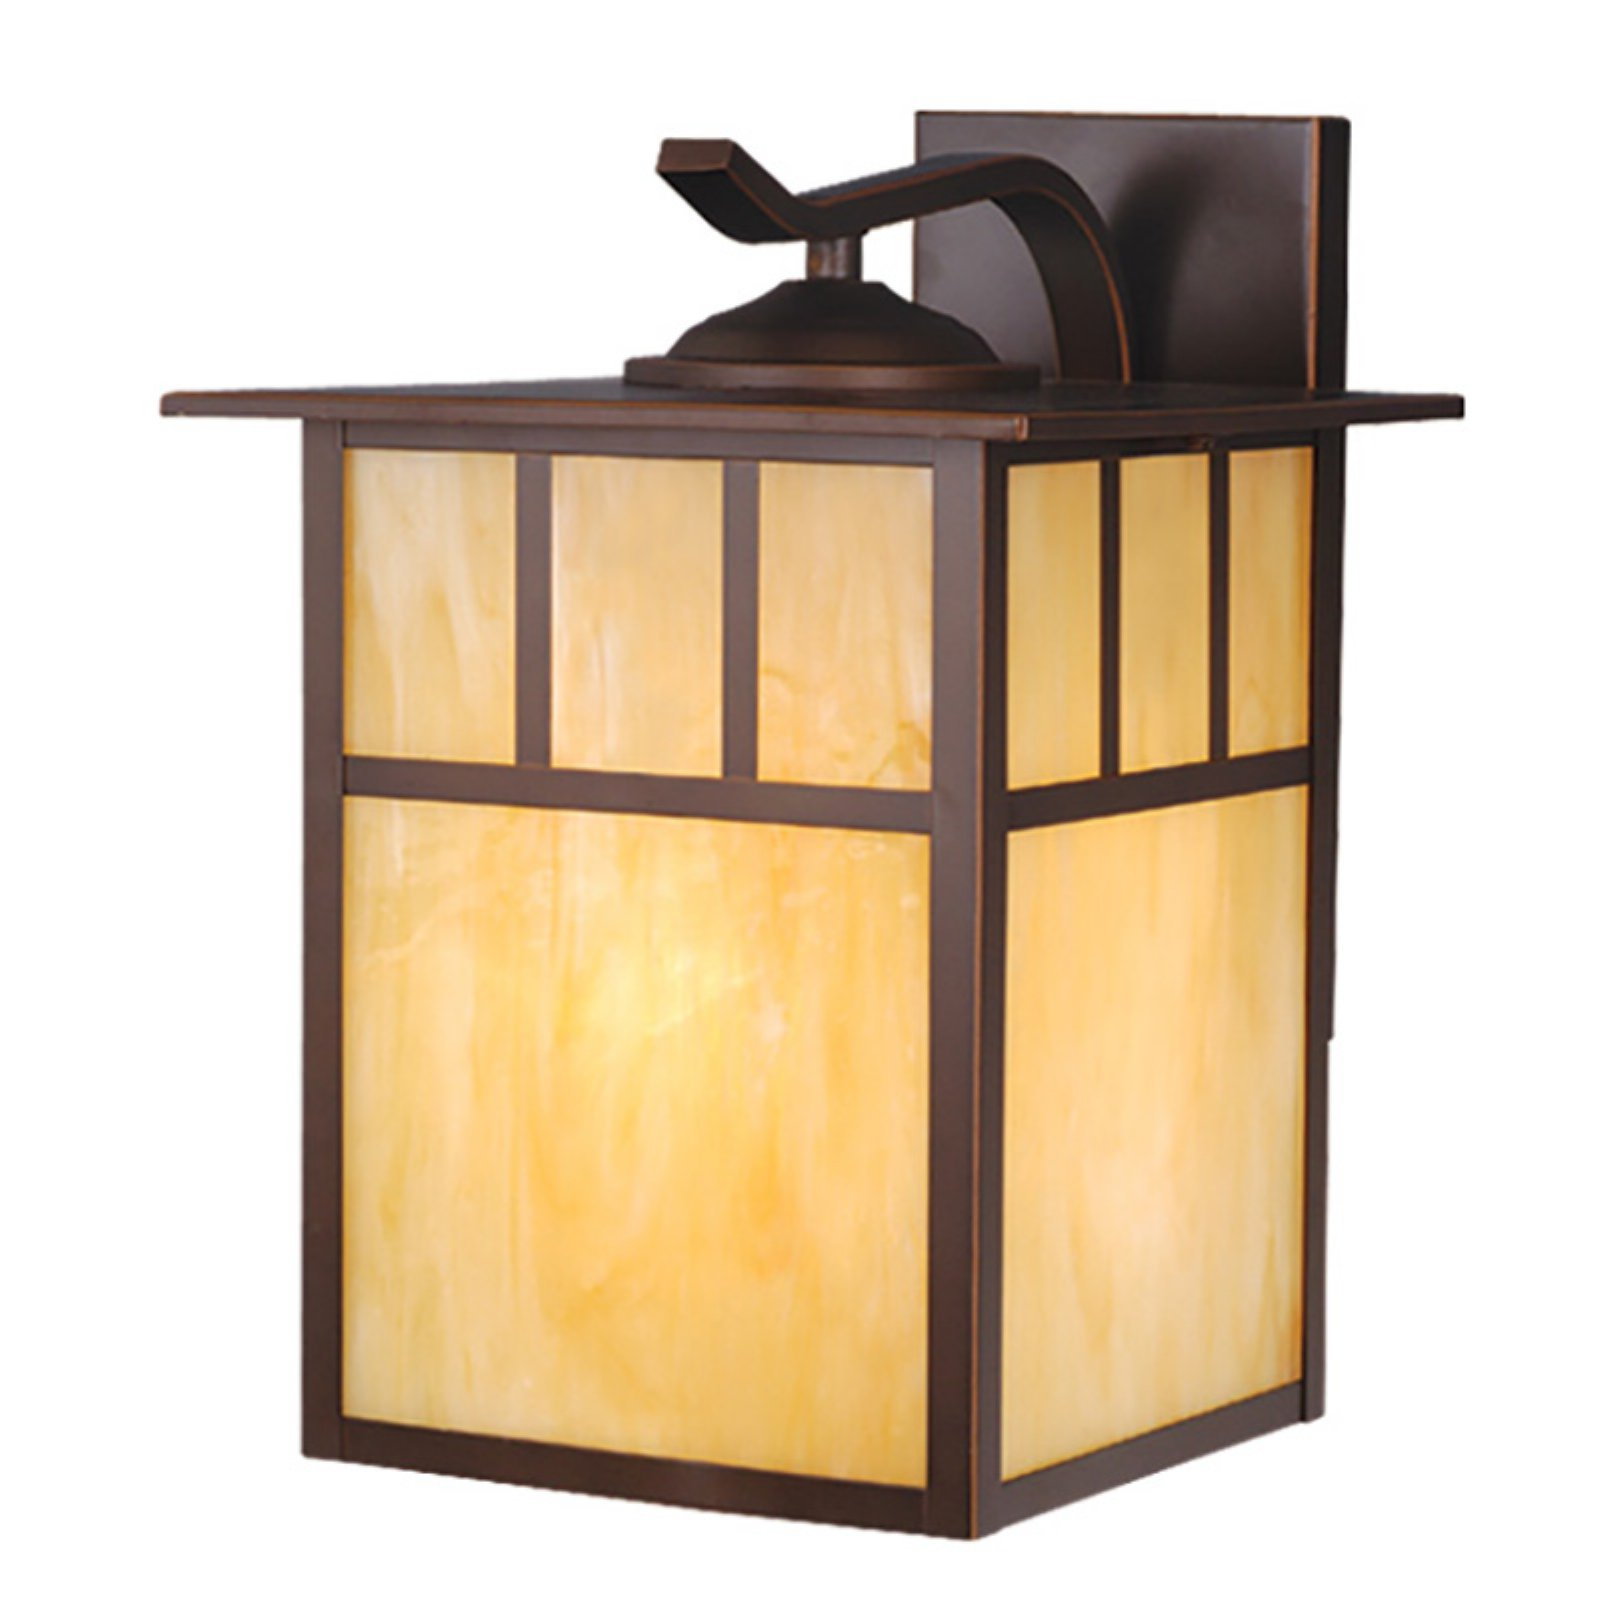 Vaxcel Mission OW146/372 Outdoor Wall Sconce